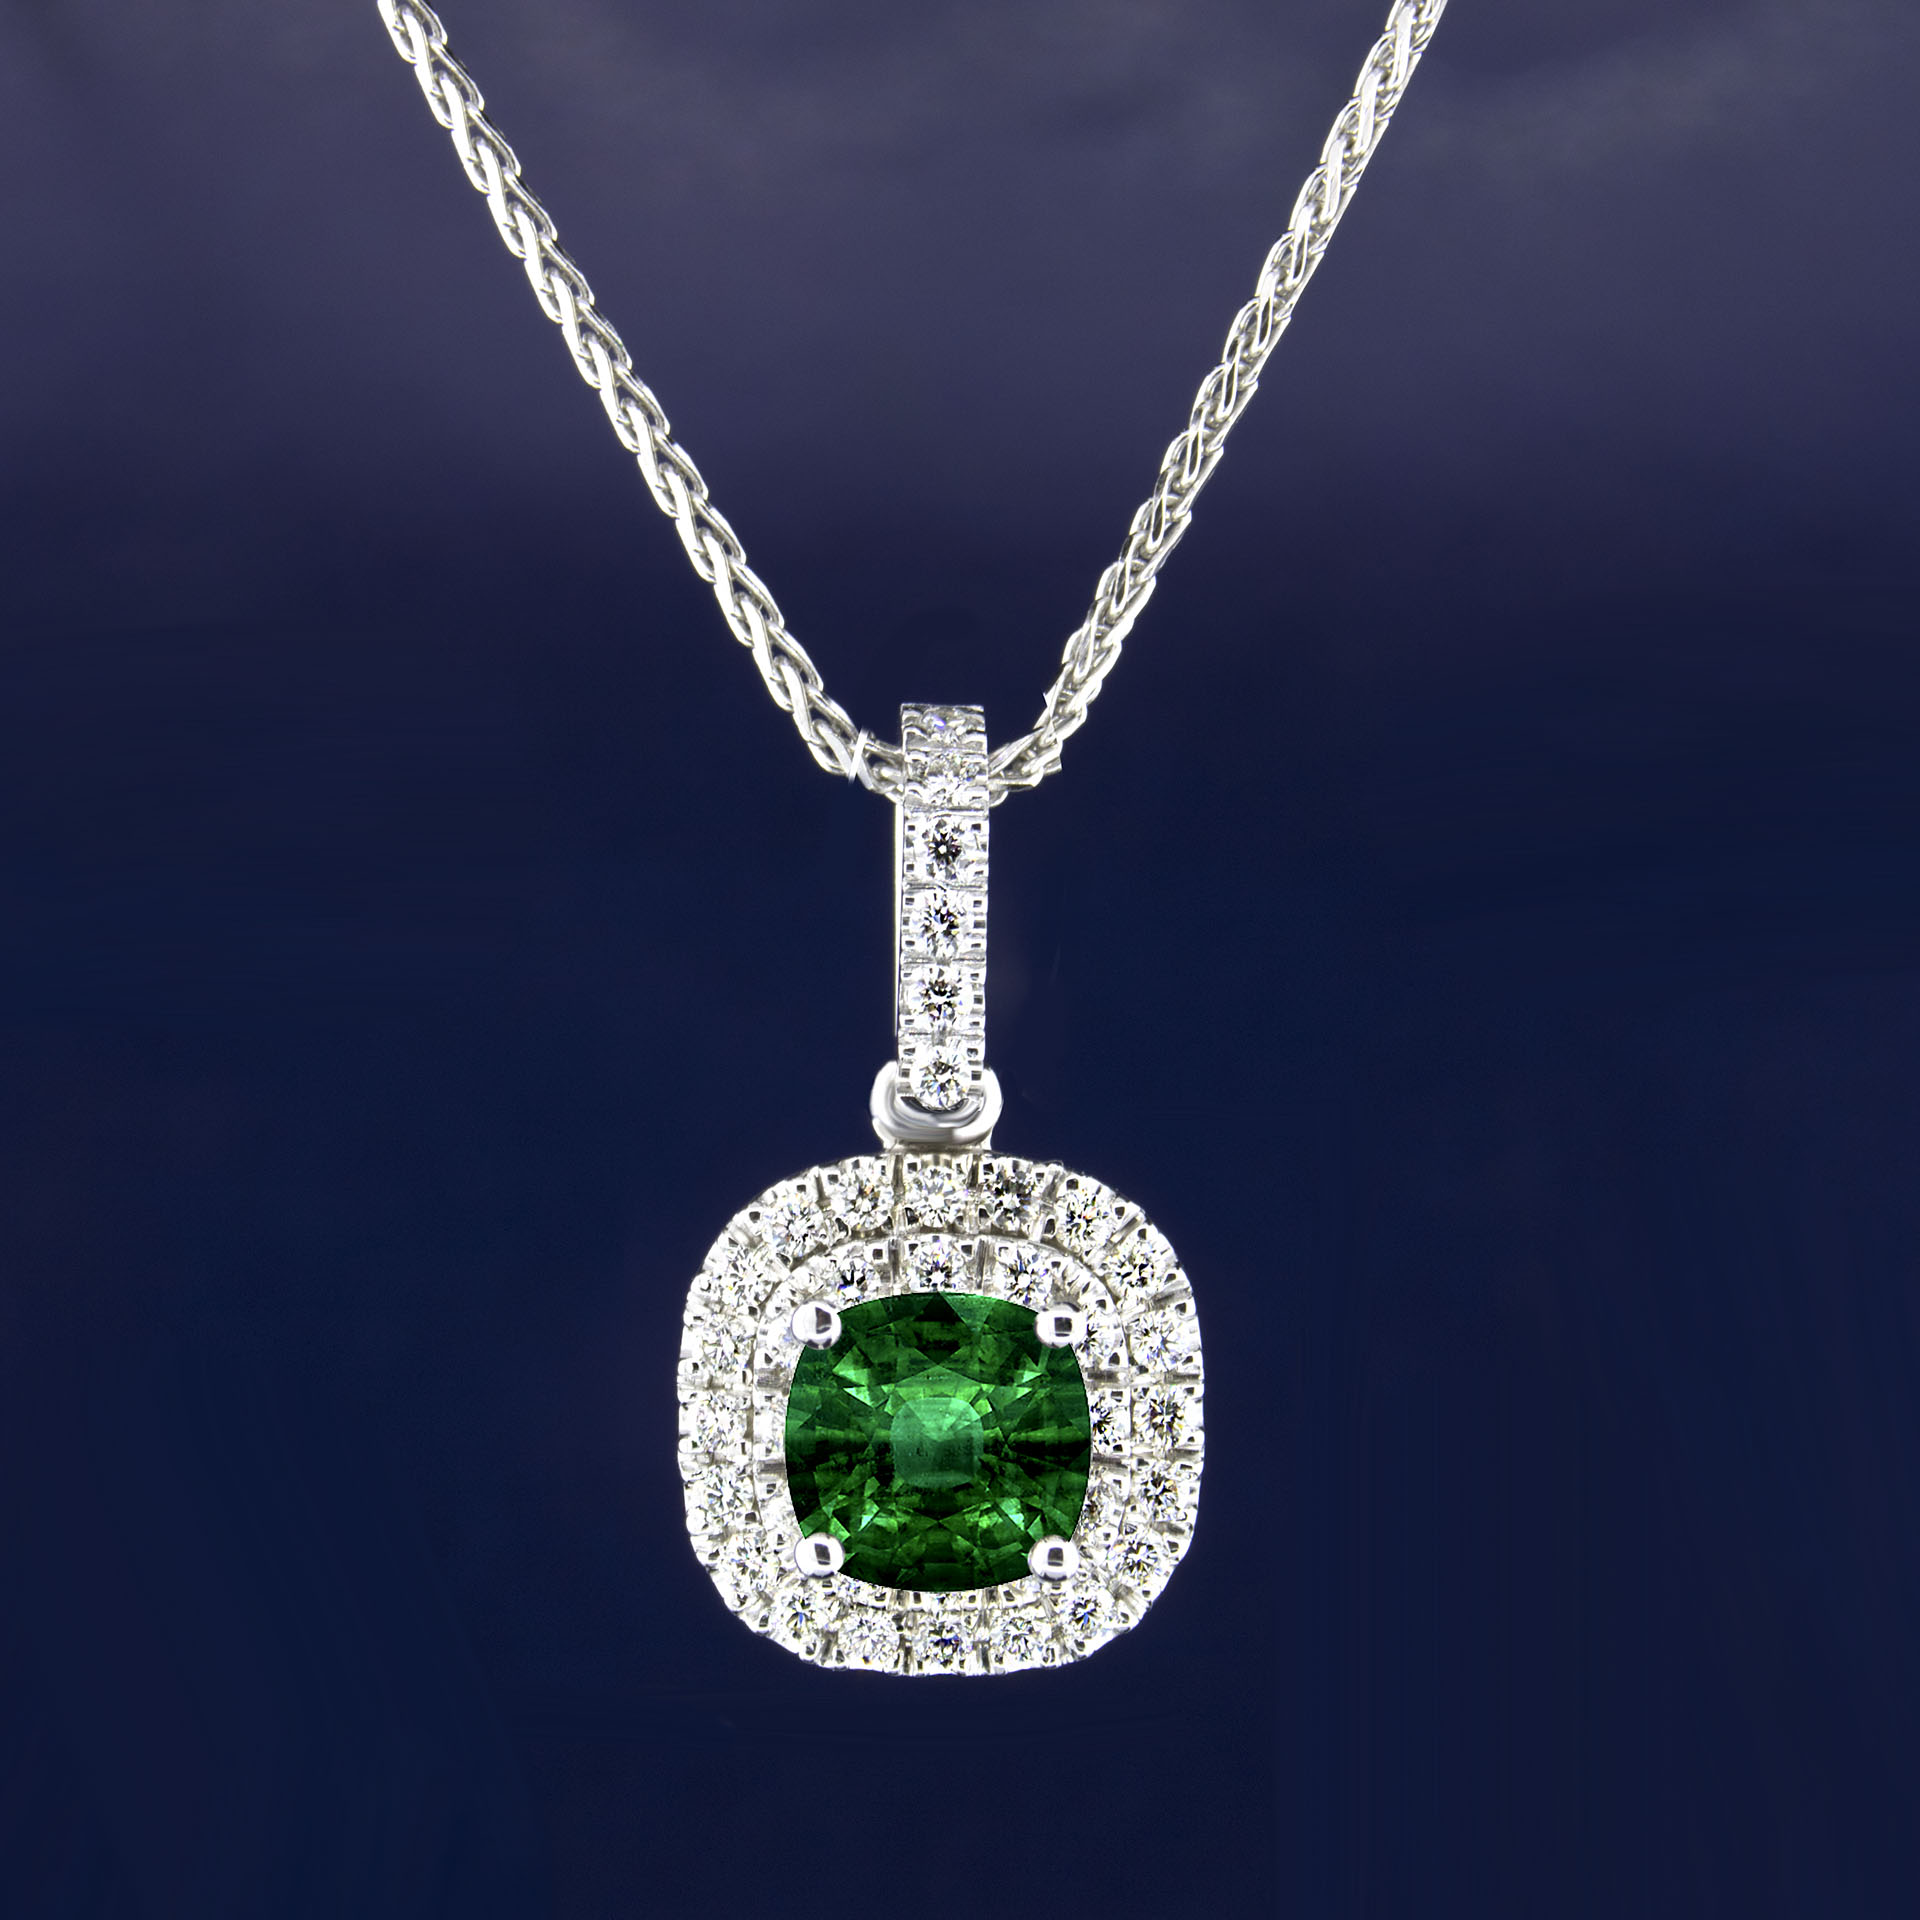 Natural emerald cushion center and 38 side diamonds center halo natural emerald cushion center and 38 side diamonds center halo pendant sarkisians jewelry aloadofball Images